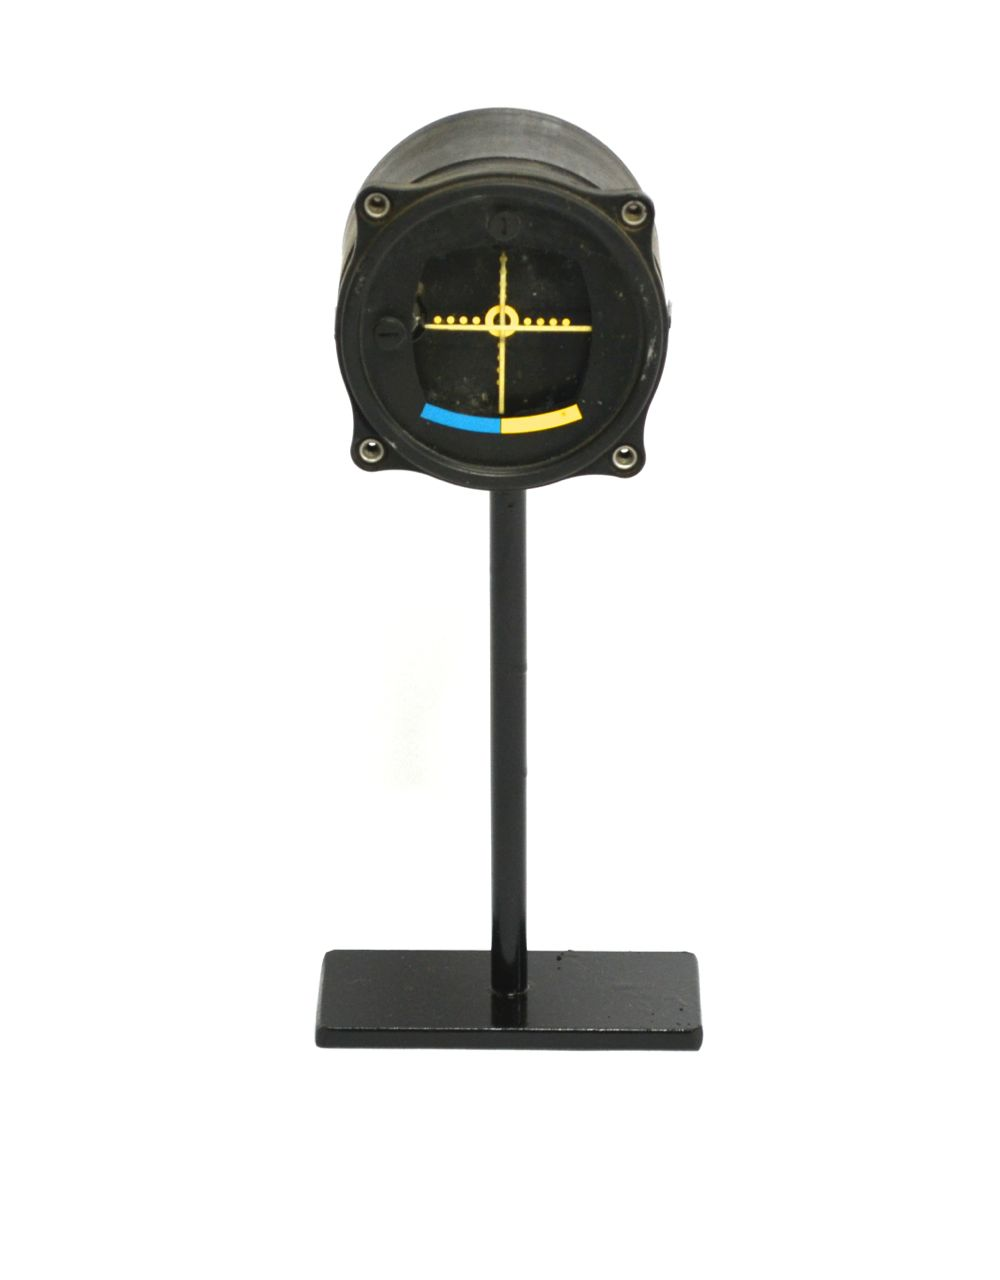 WWII AIRPLANE GAUGE IMAGE